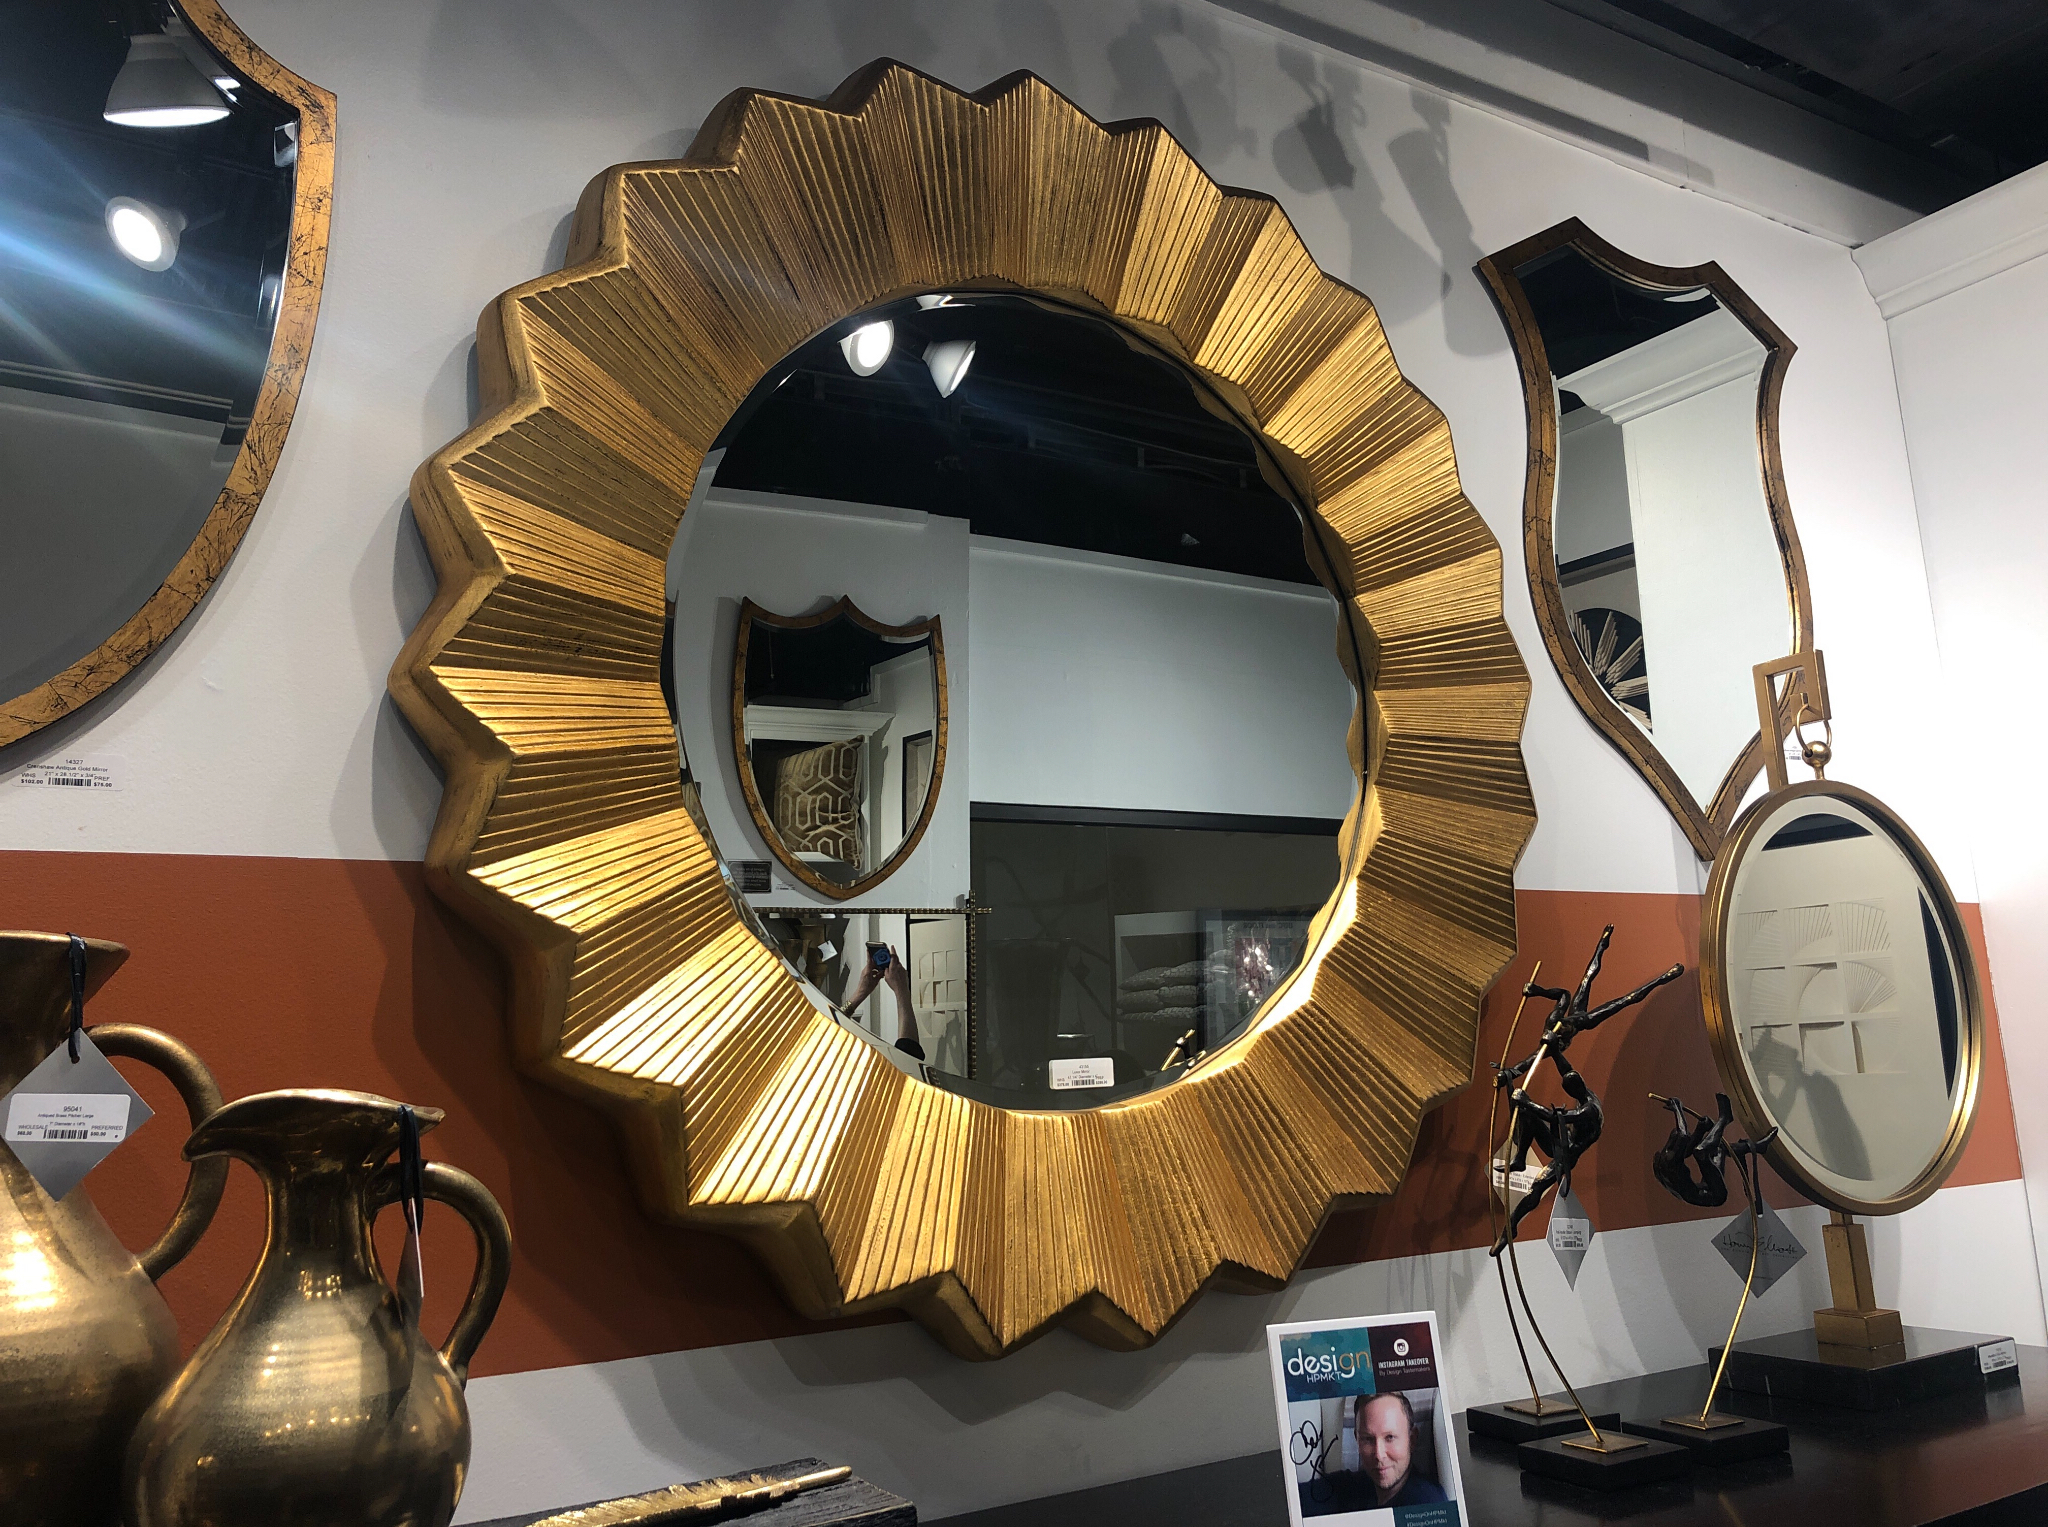 The mirror collection at Howard Elliott stole my heart. I'll take one of each please!